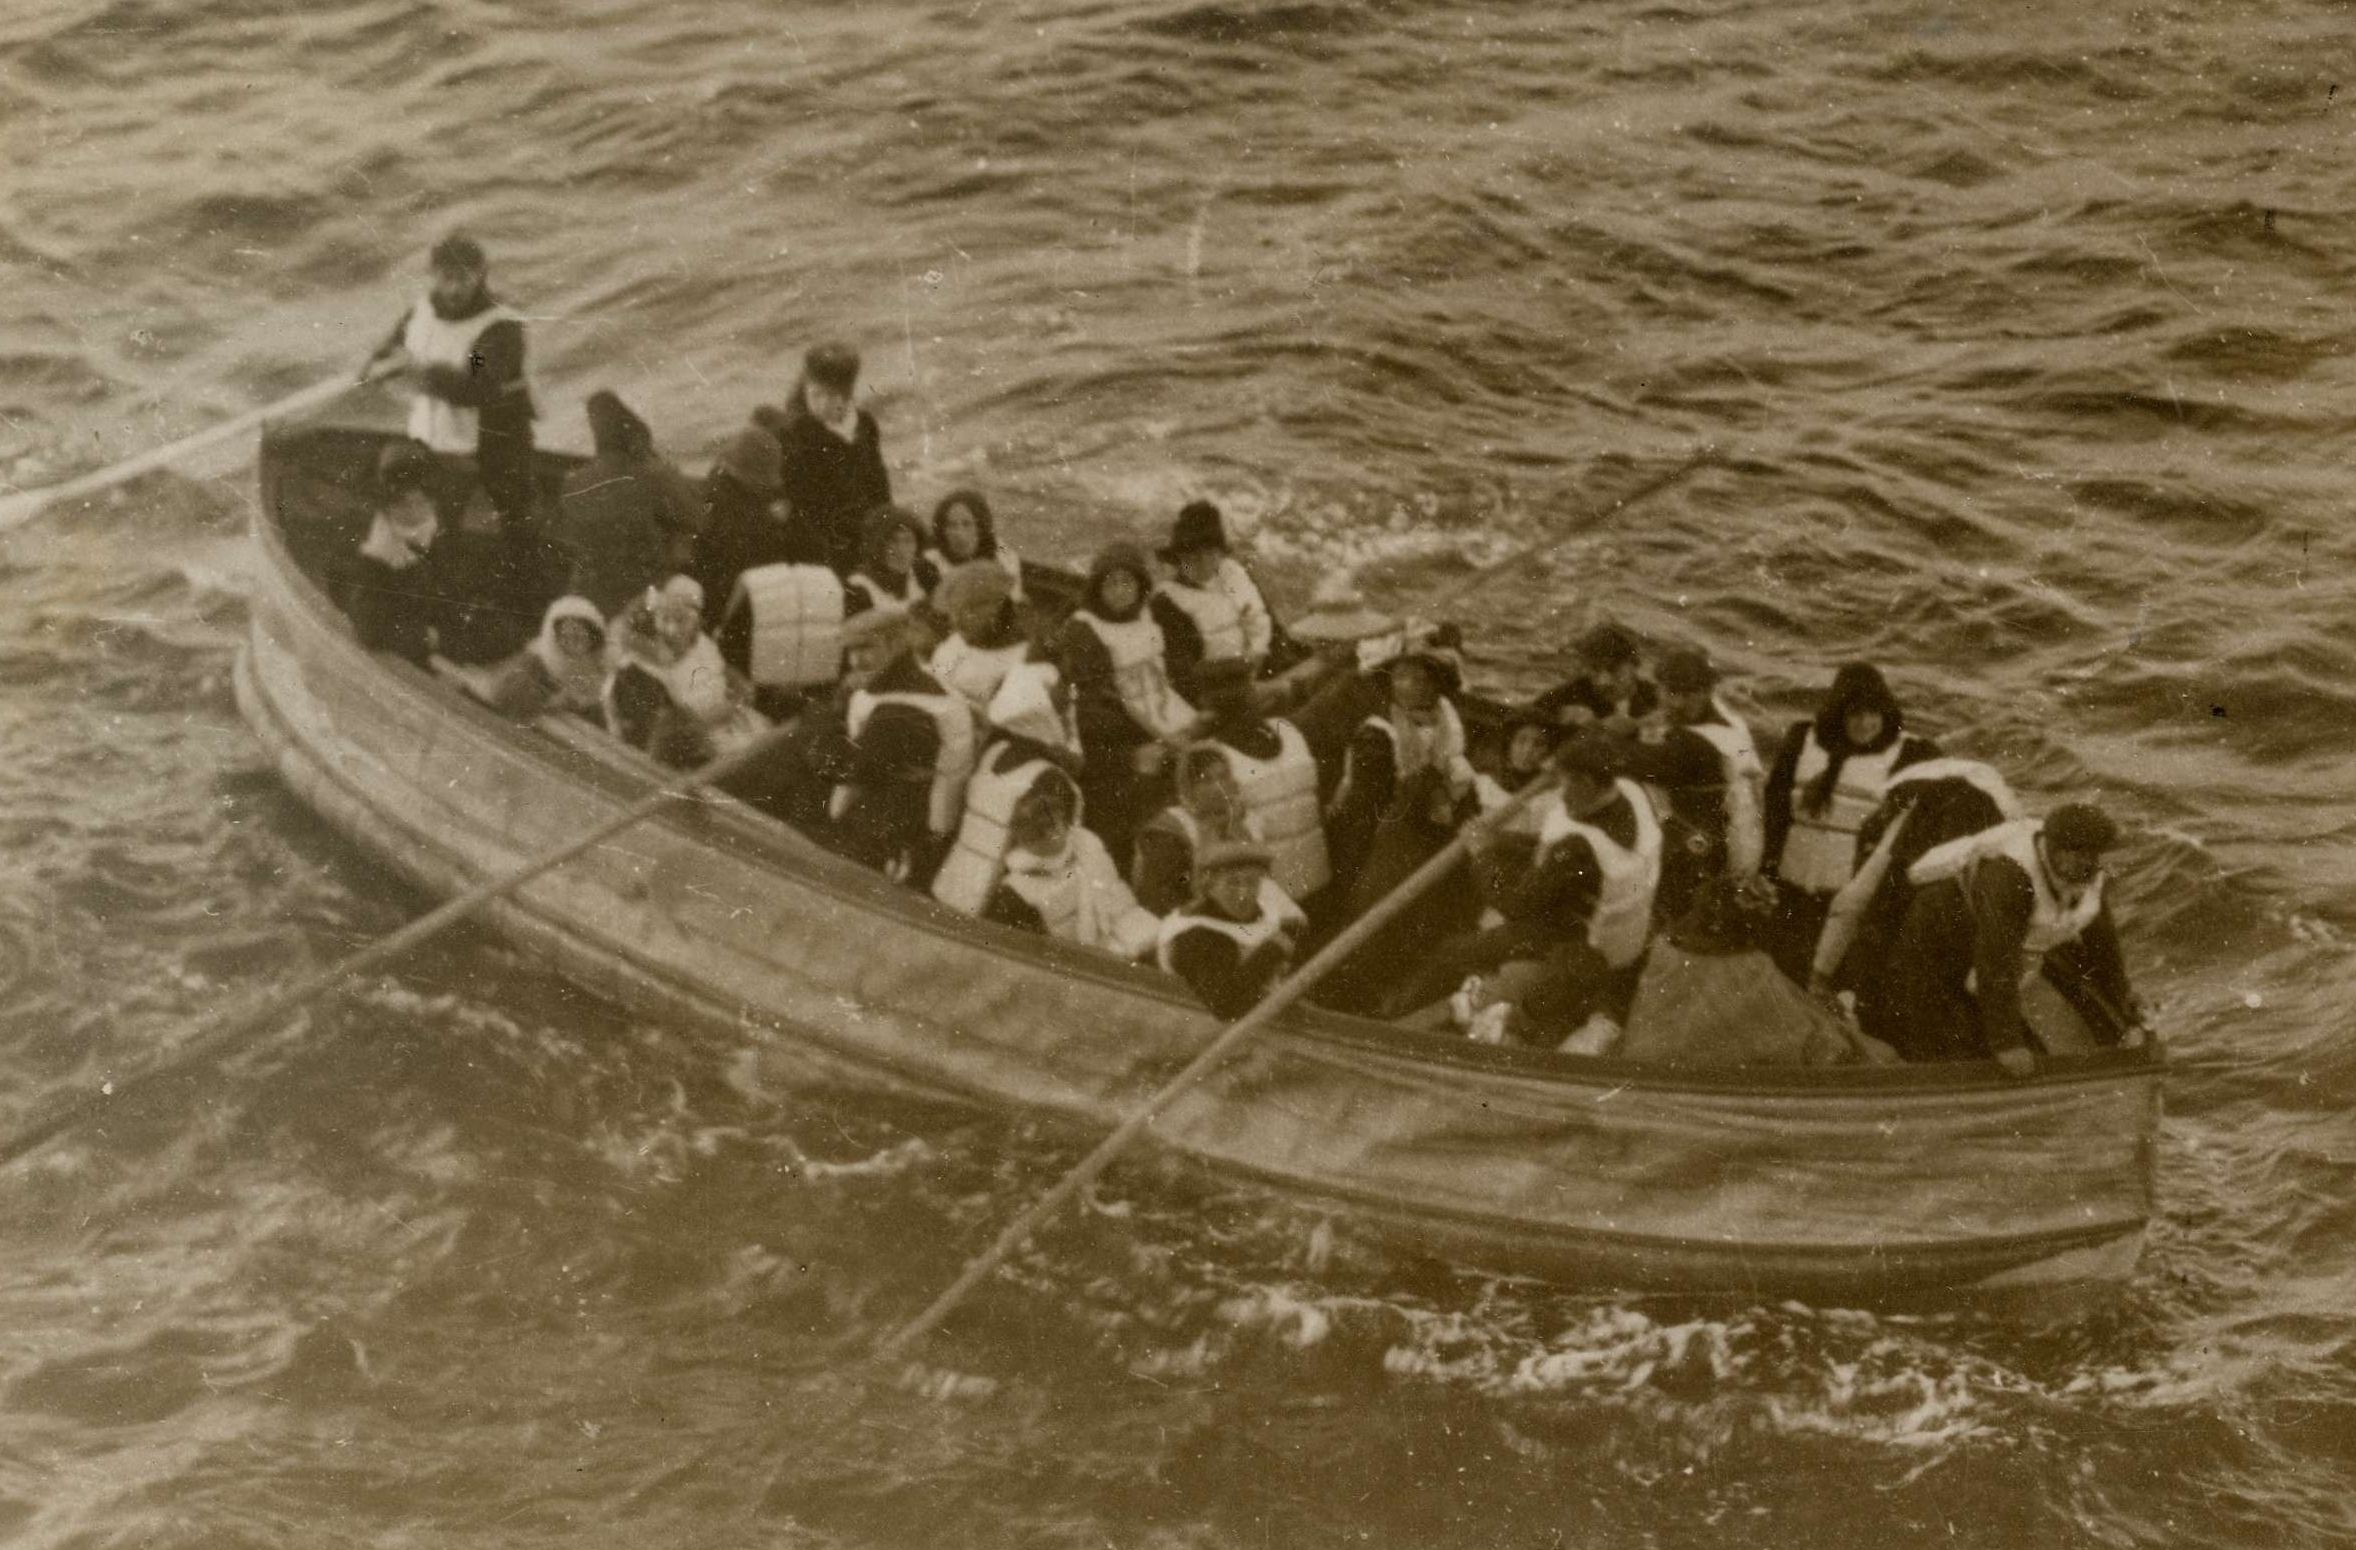 Lifeboat Carrying Titanic Survivors